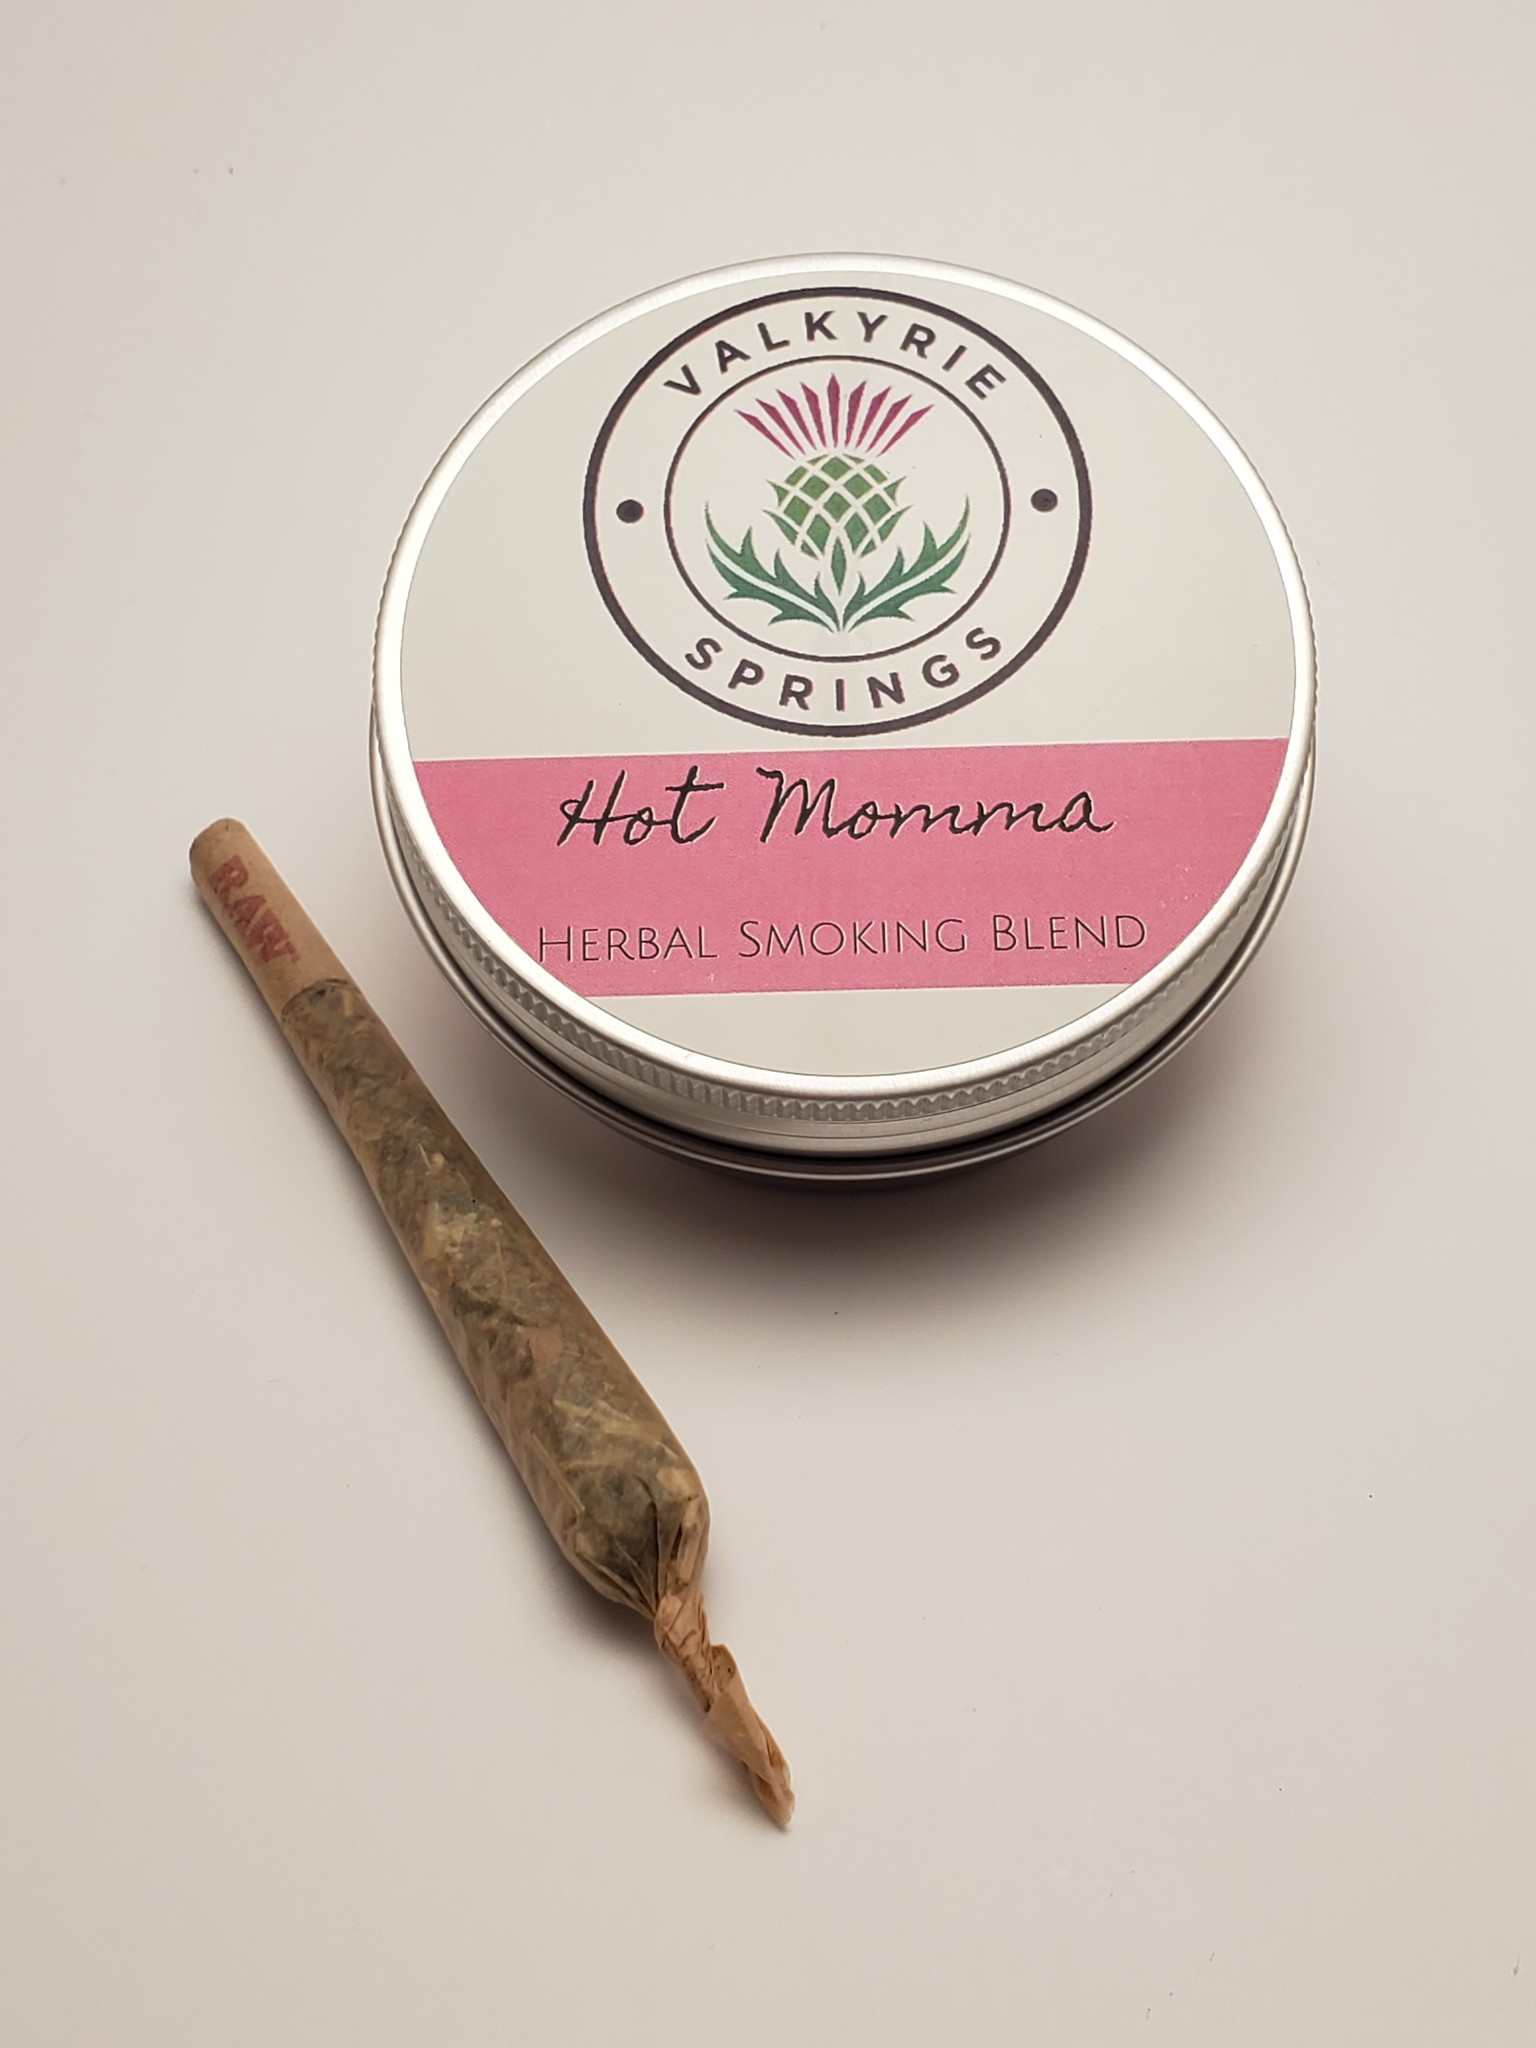 Valkyrie Springs Valkyrie Springs | Hot Momma Herbal Blend | 3.5g